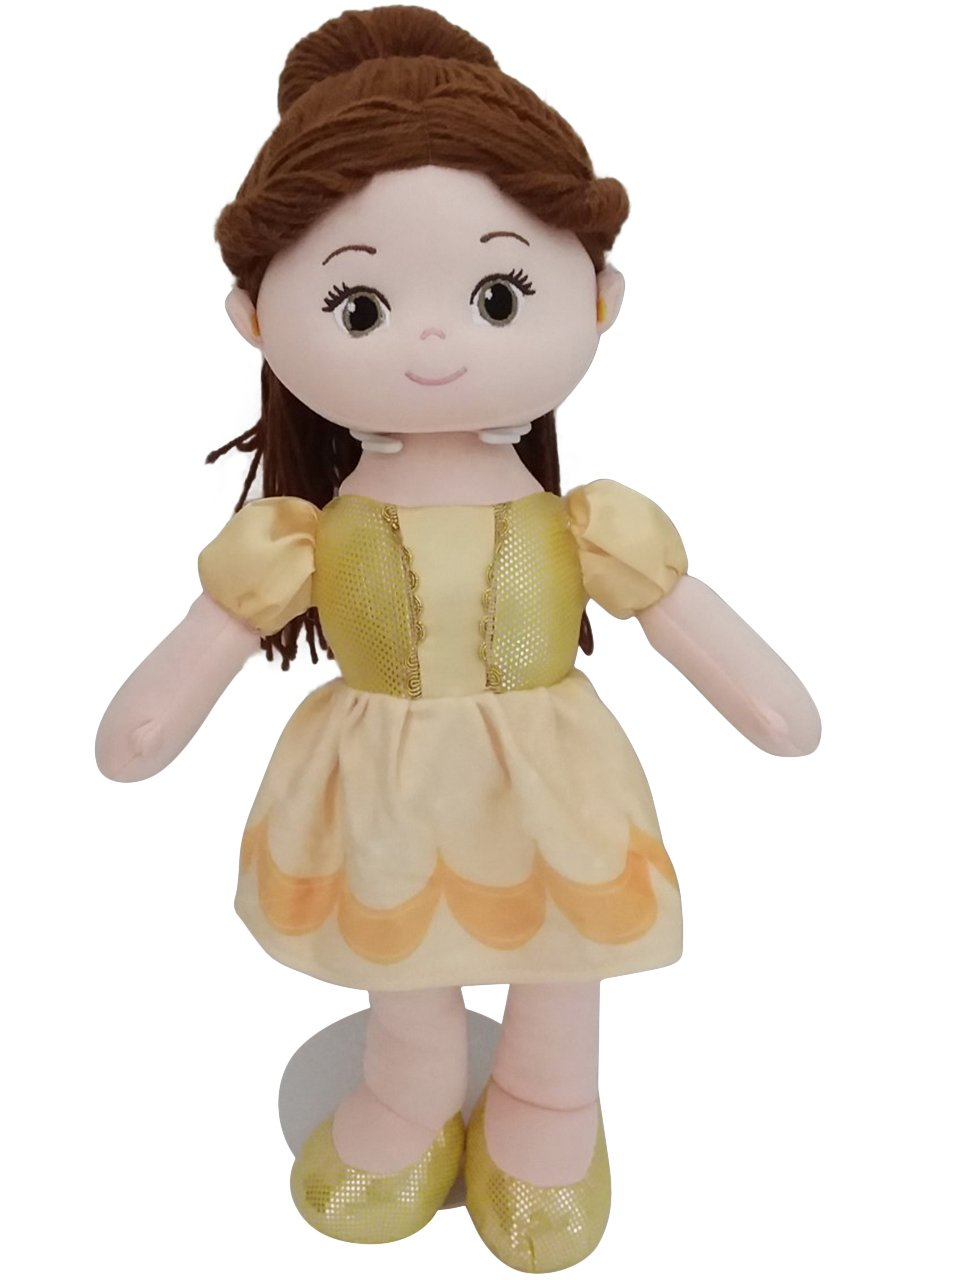 Belle baby doll beauty and the beast